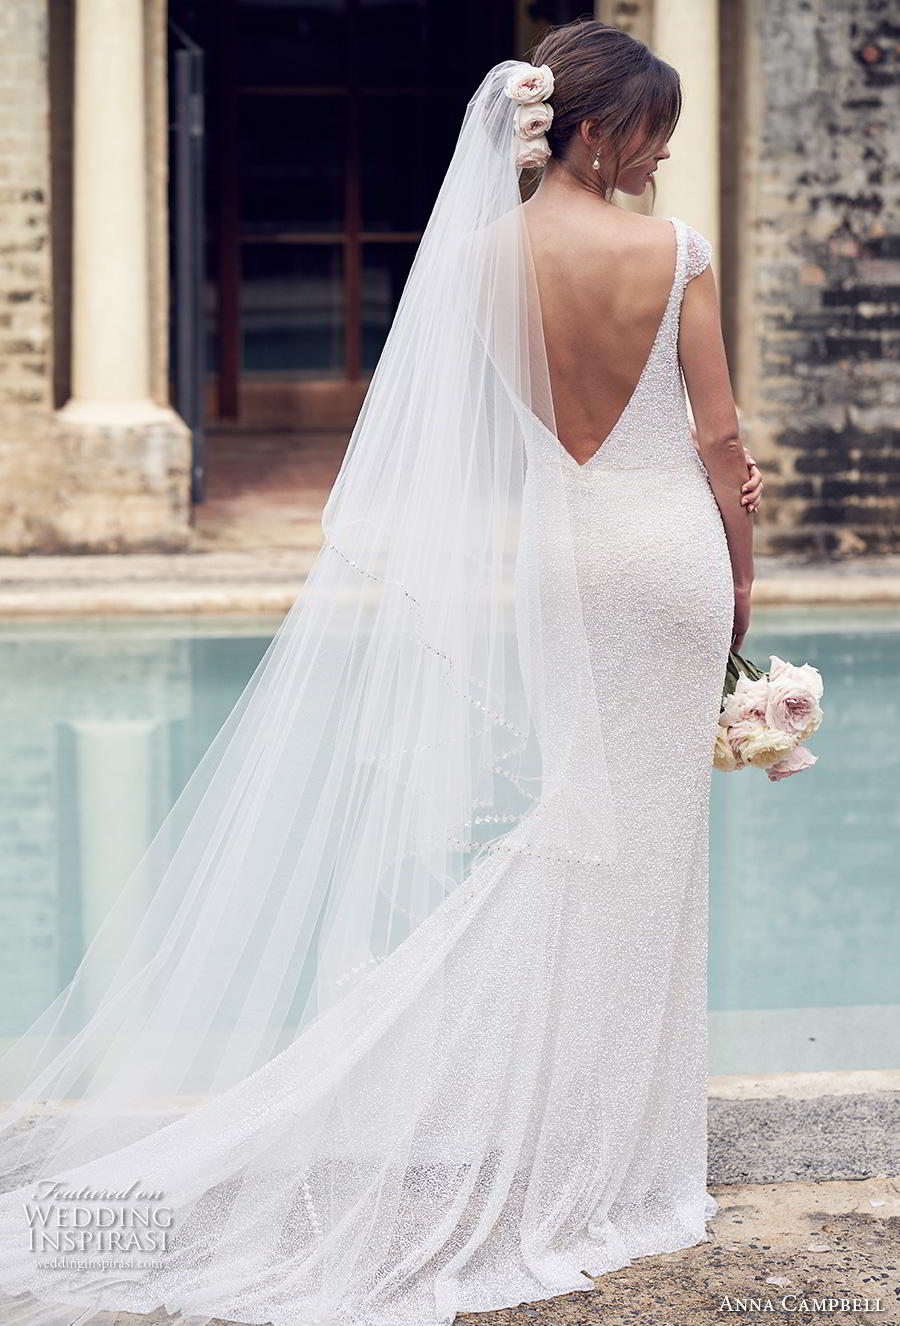 anna campbell 2019 bridal cap sleeves bateau neckline full embellishment simple elegant sheath wedding dress backless v back chapel train (4) bv